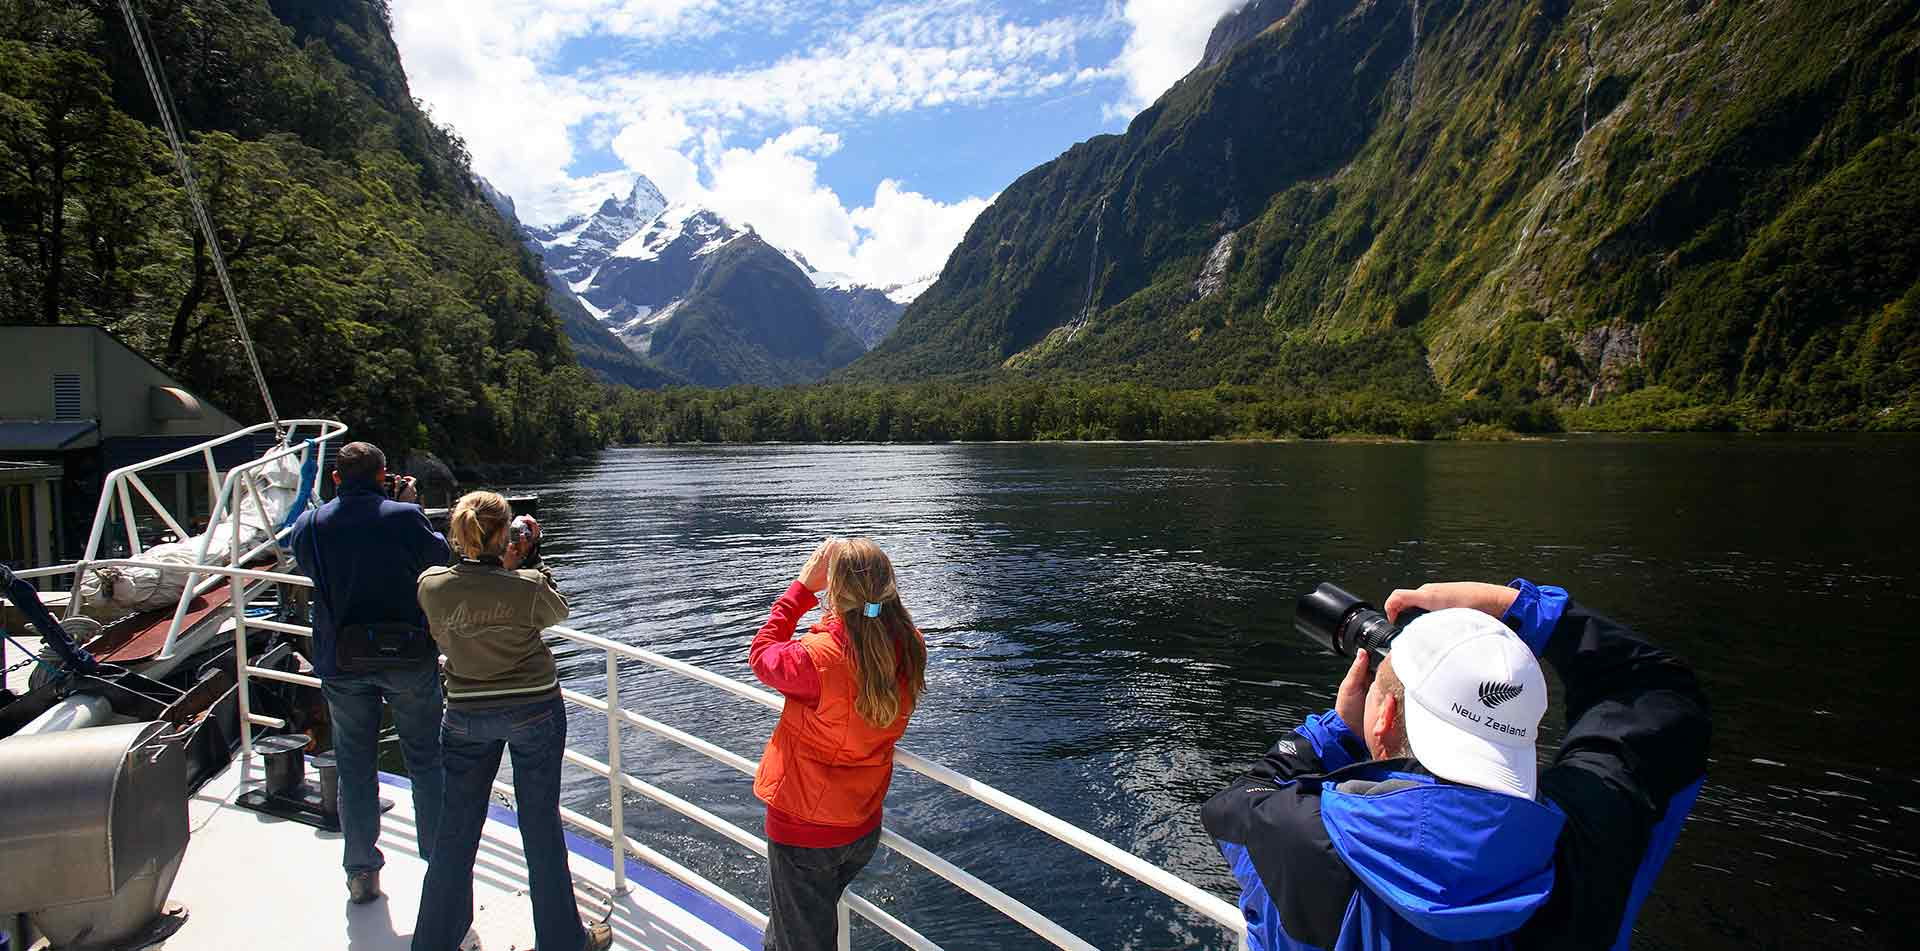 People taking pictures of Milford Sound